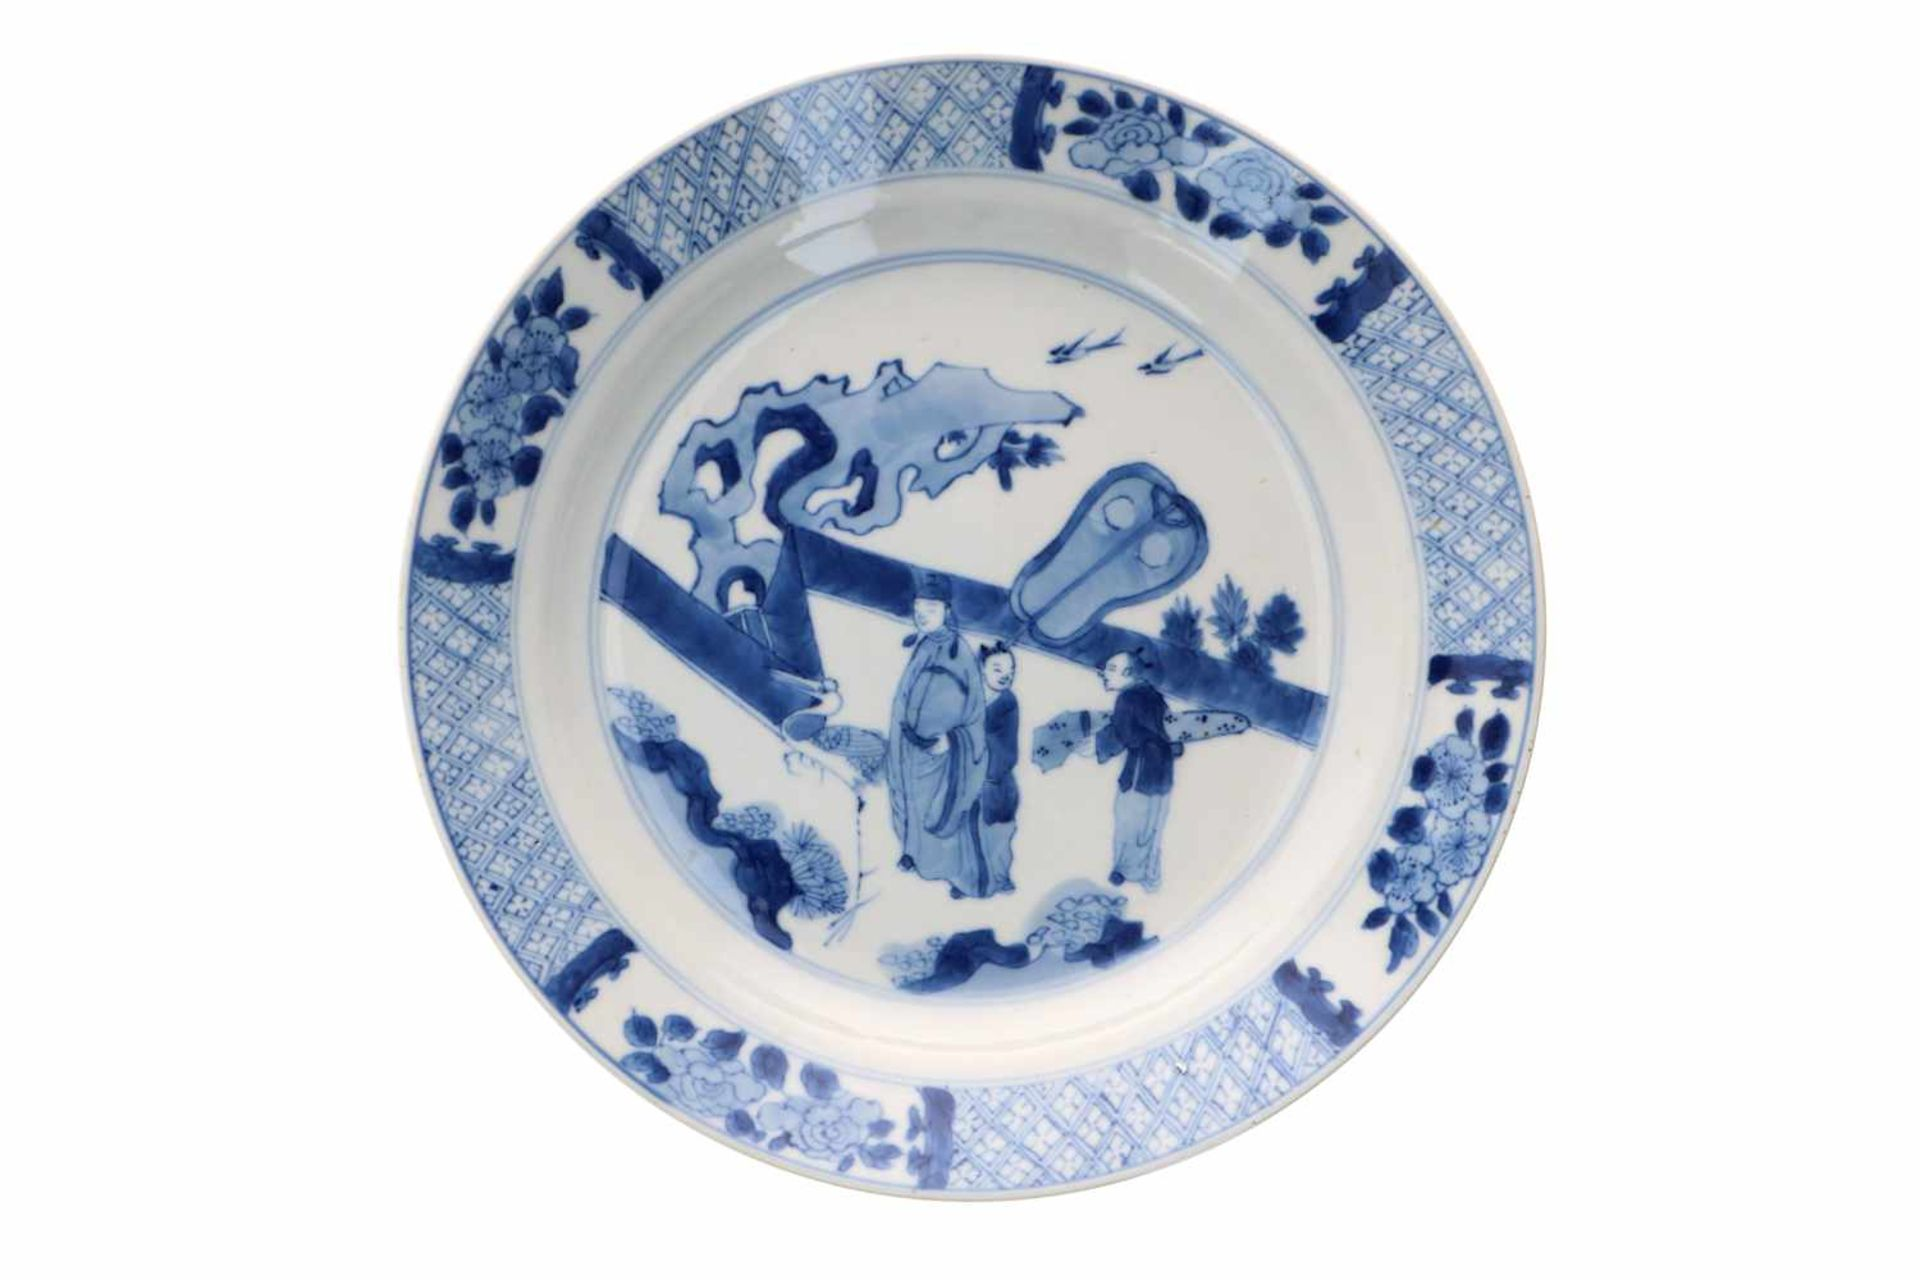 A blue and white porcelain dish, decorated with a dignitary with two servants and a crane on a